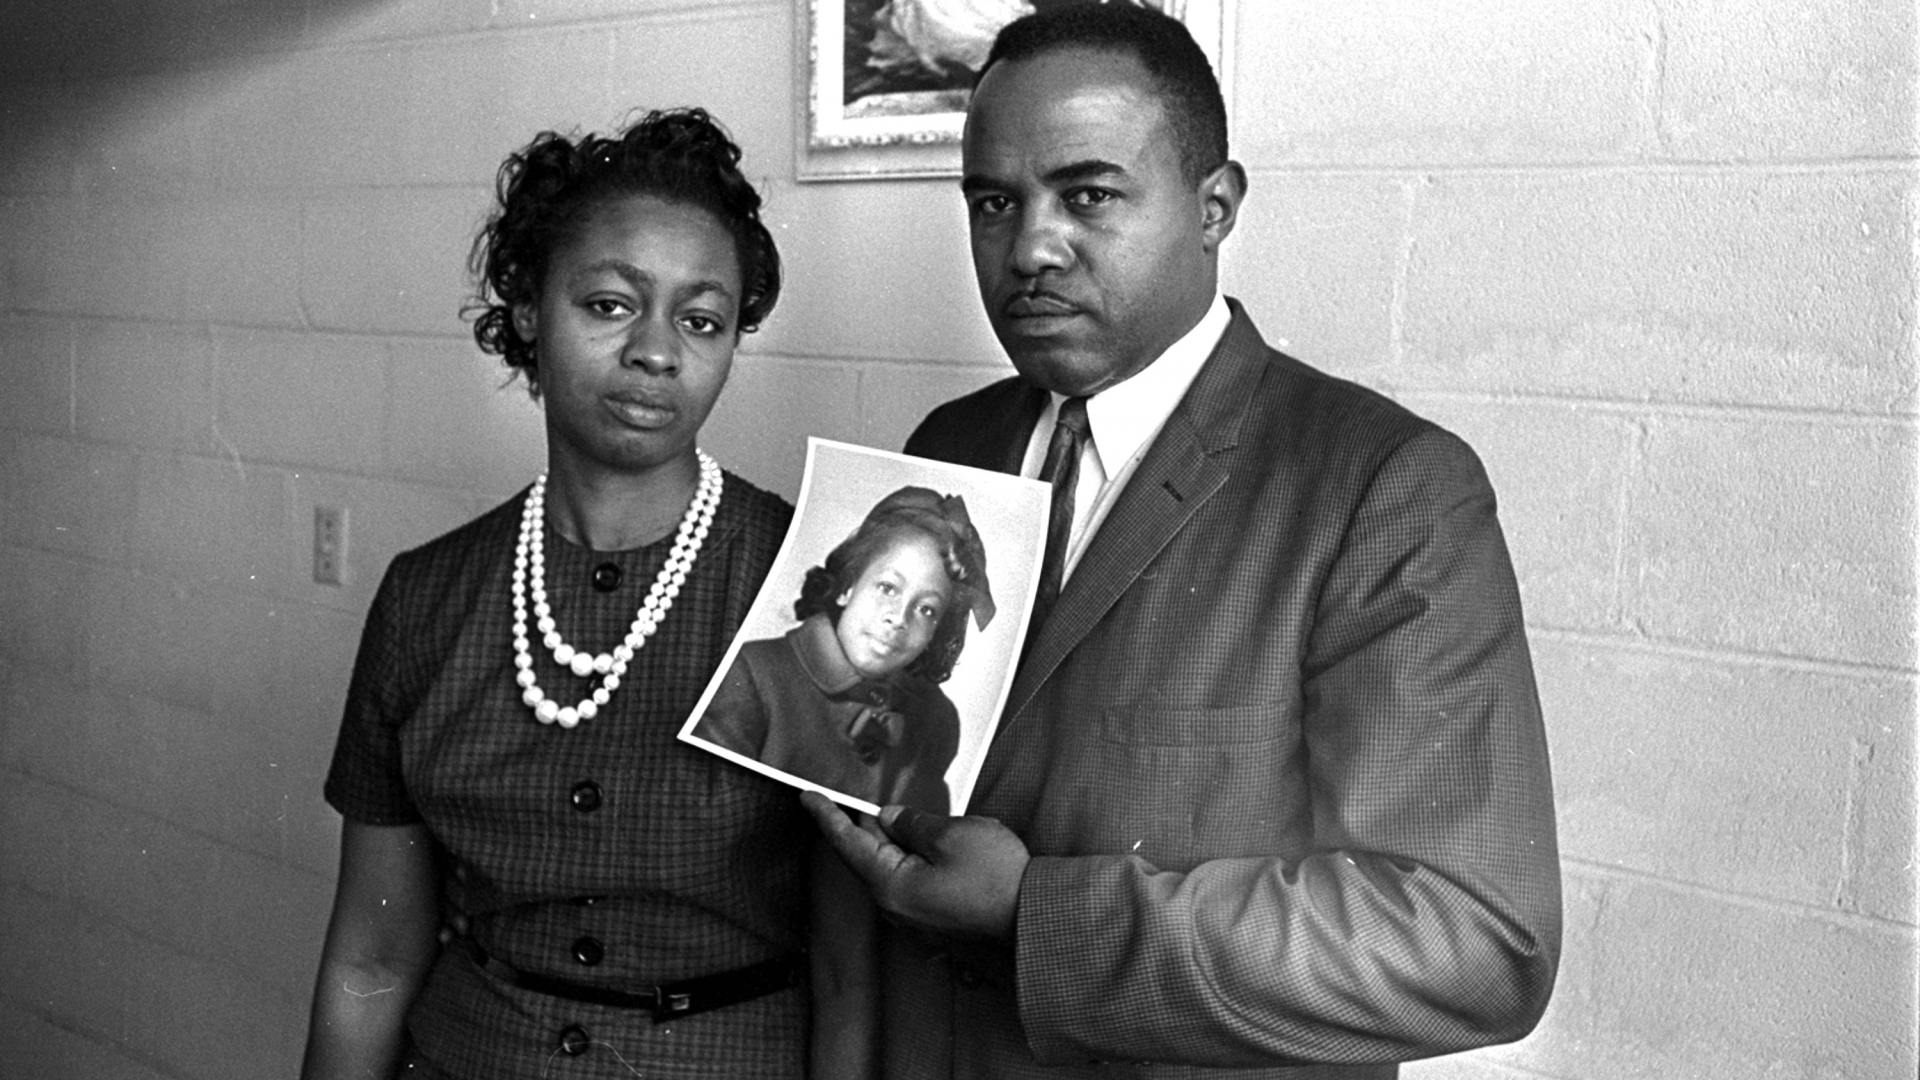 Mr. and Mrs. Chris McNair with a picture of their daughter, Denise, 11, who was one of the four girls who died in the 16th Street Church bombing in Birmingham, 1963. (Credit: AP Photo)